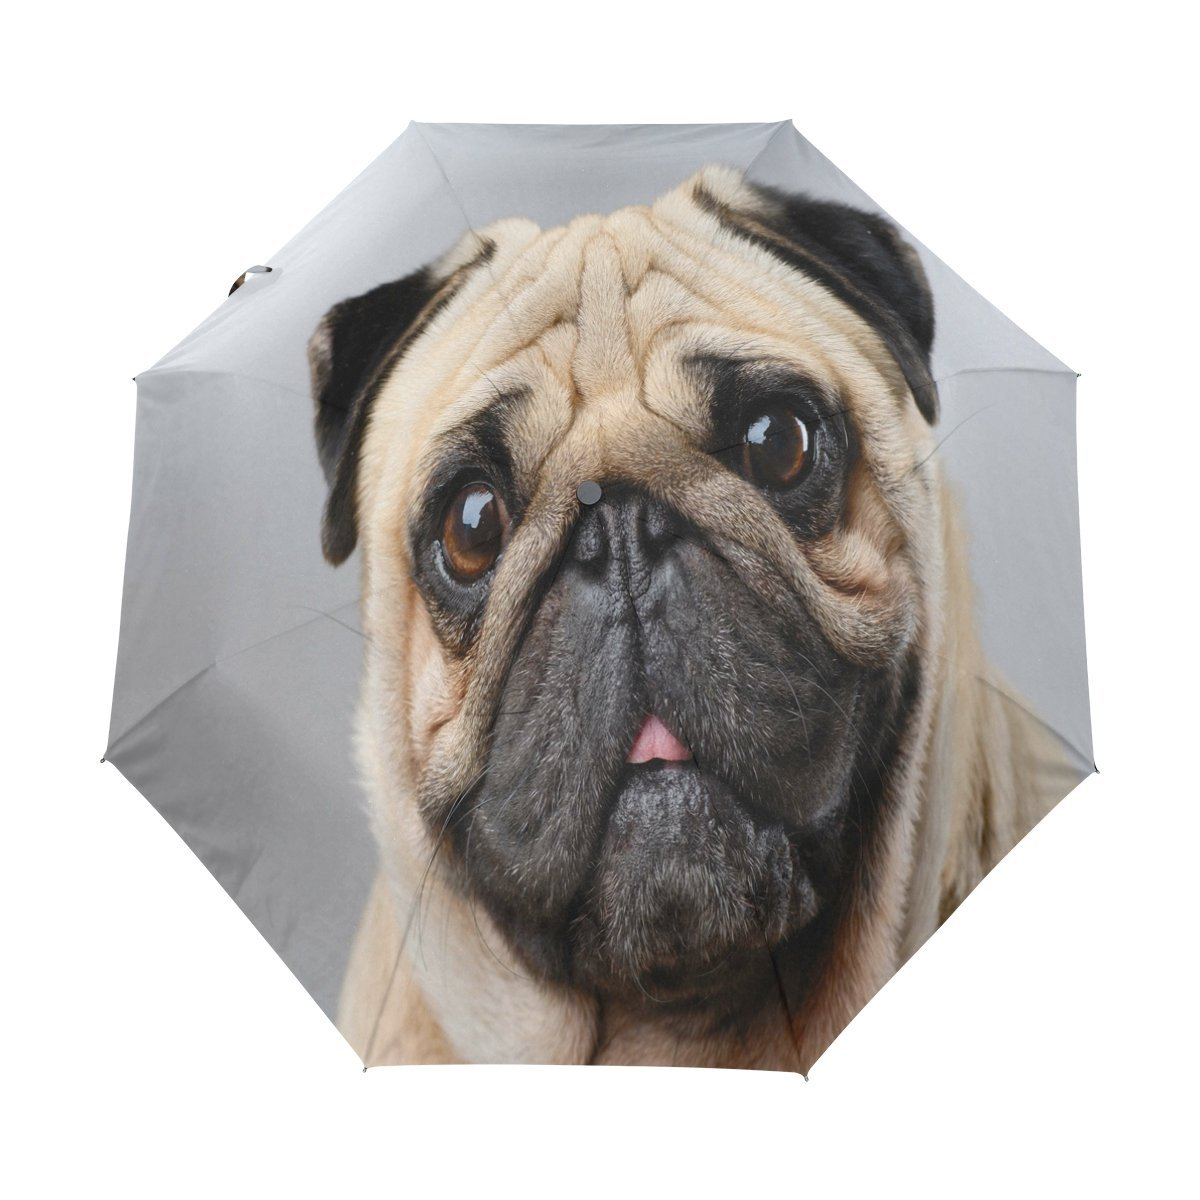 WOZO Puppy Pug Dog 3 Folds Auto Open Close Umbrella